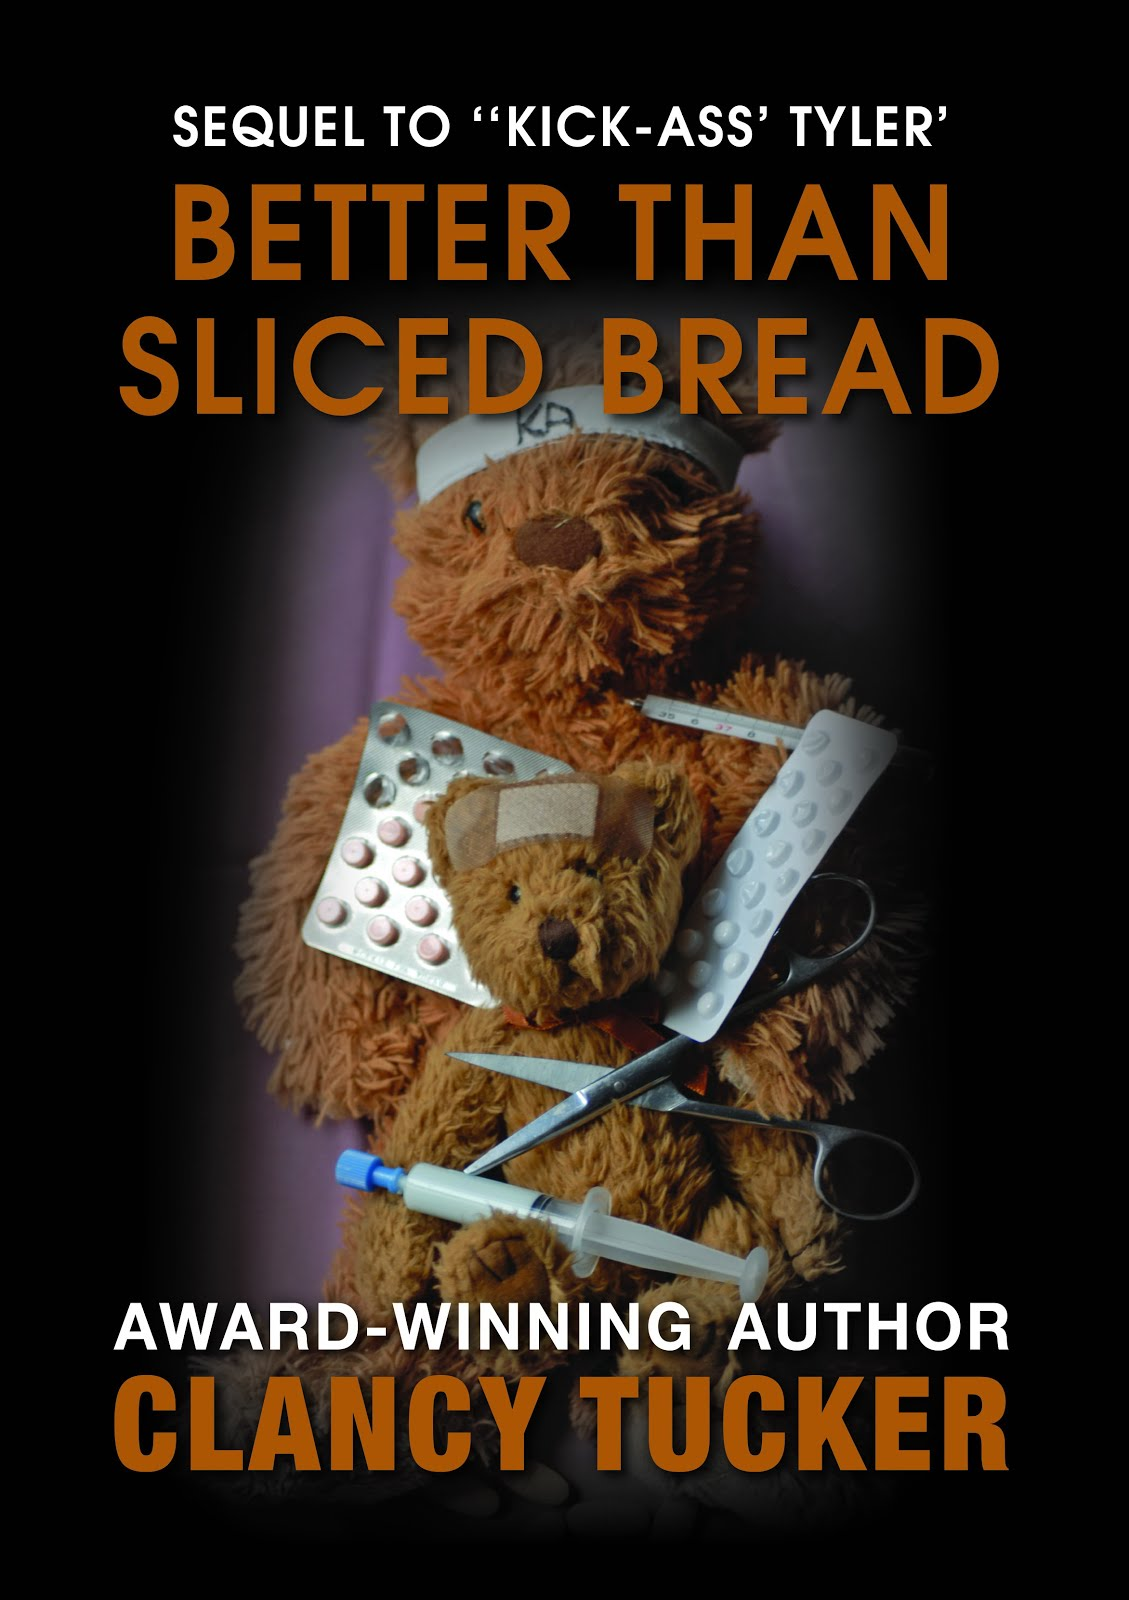 BUY 'BETTER THAN SLICED BREAD' PAPERBACK FROM OUTSIDE AUSTRALIA